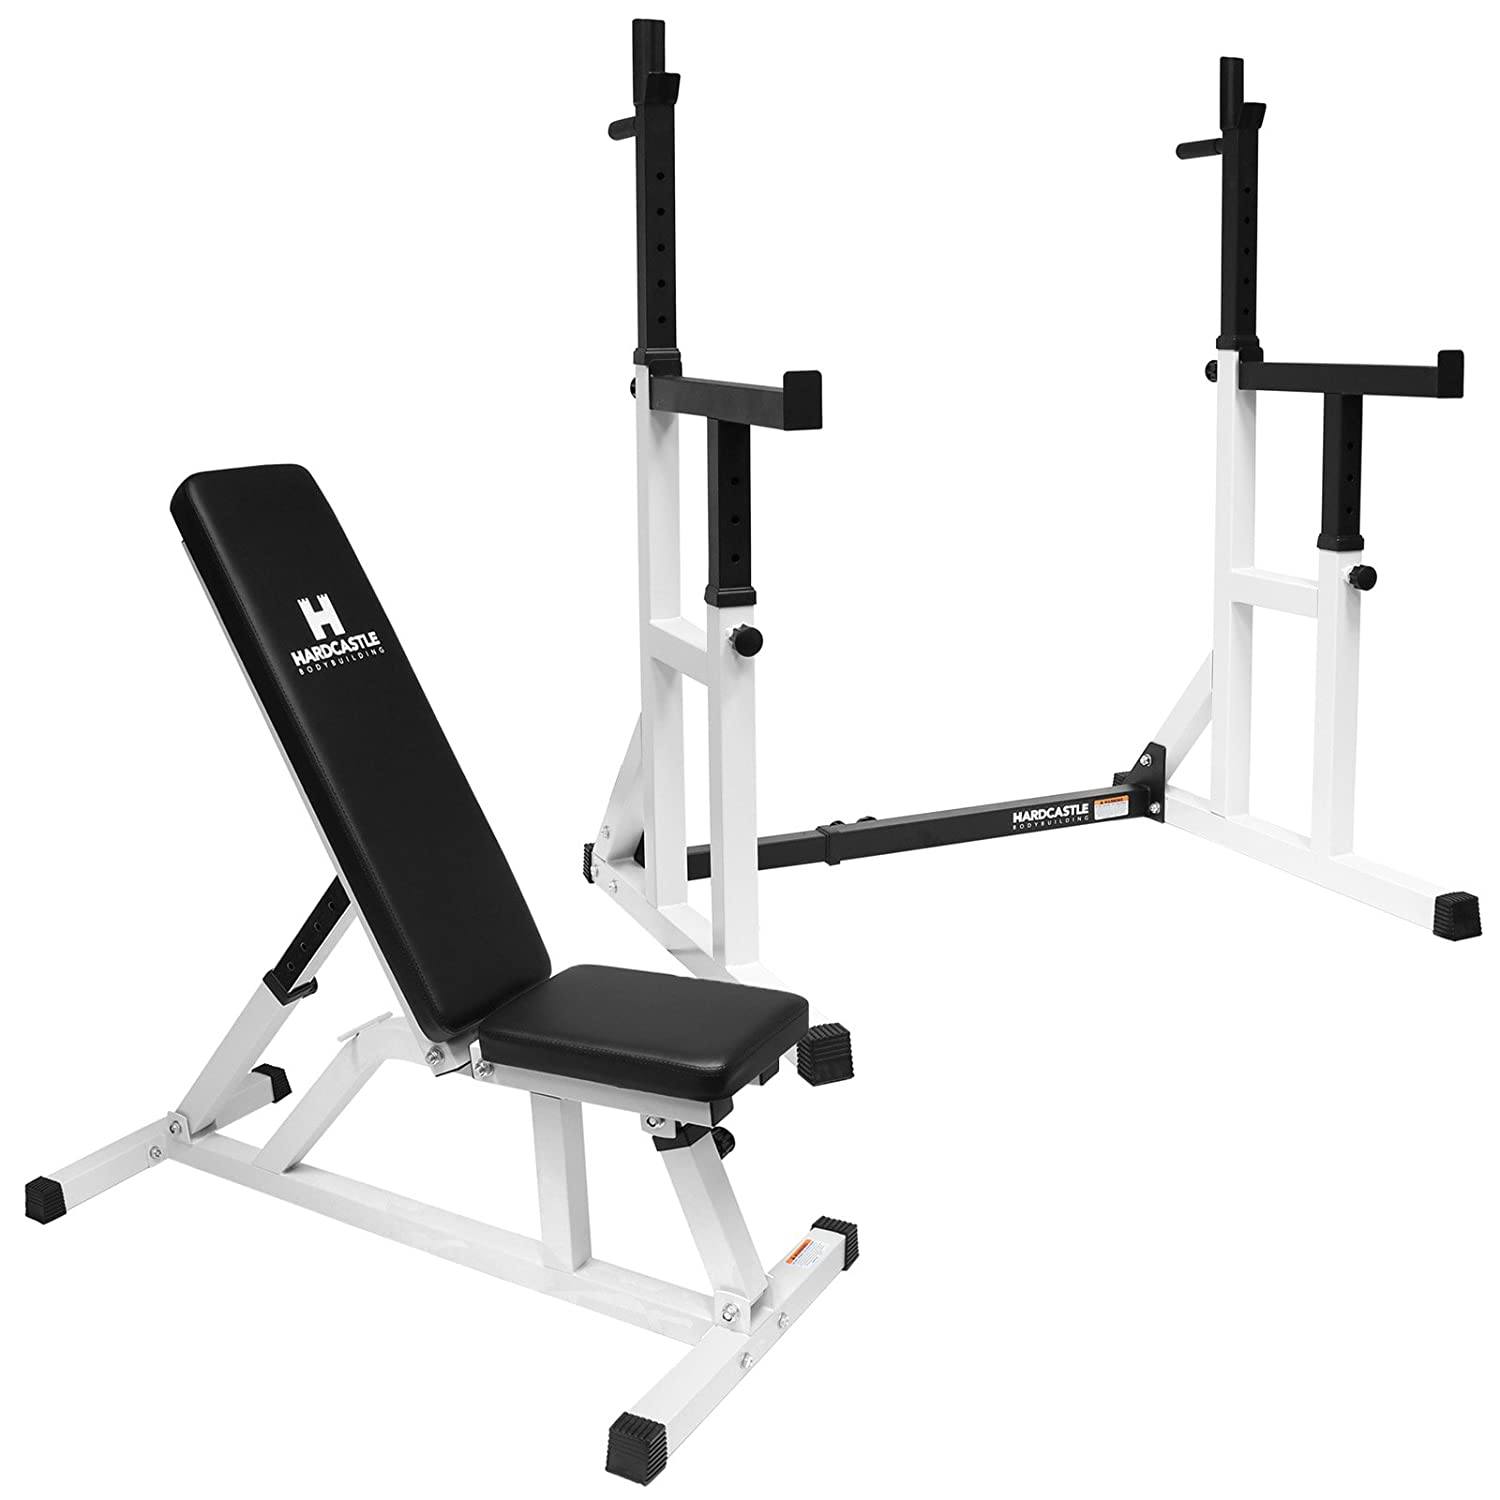 rack set stand gym adjustable barbell weight squat itm weights and power bench with